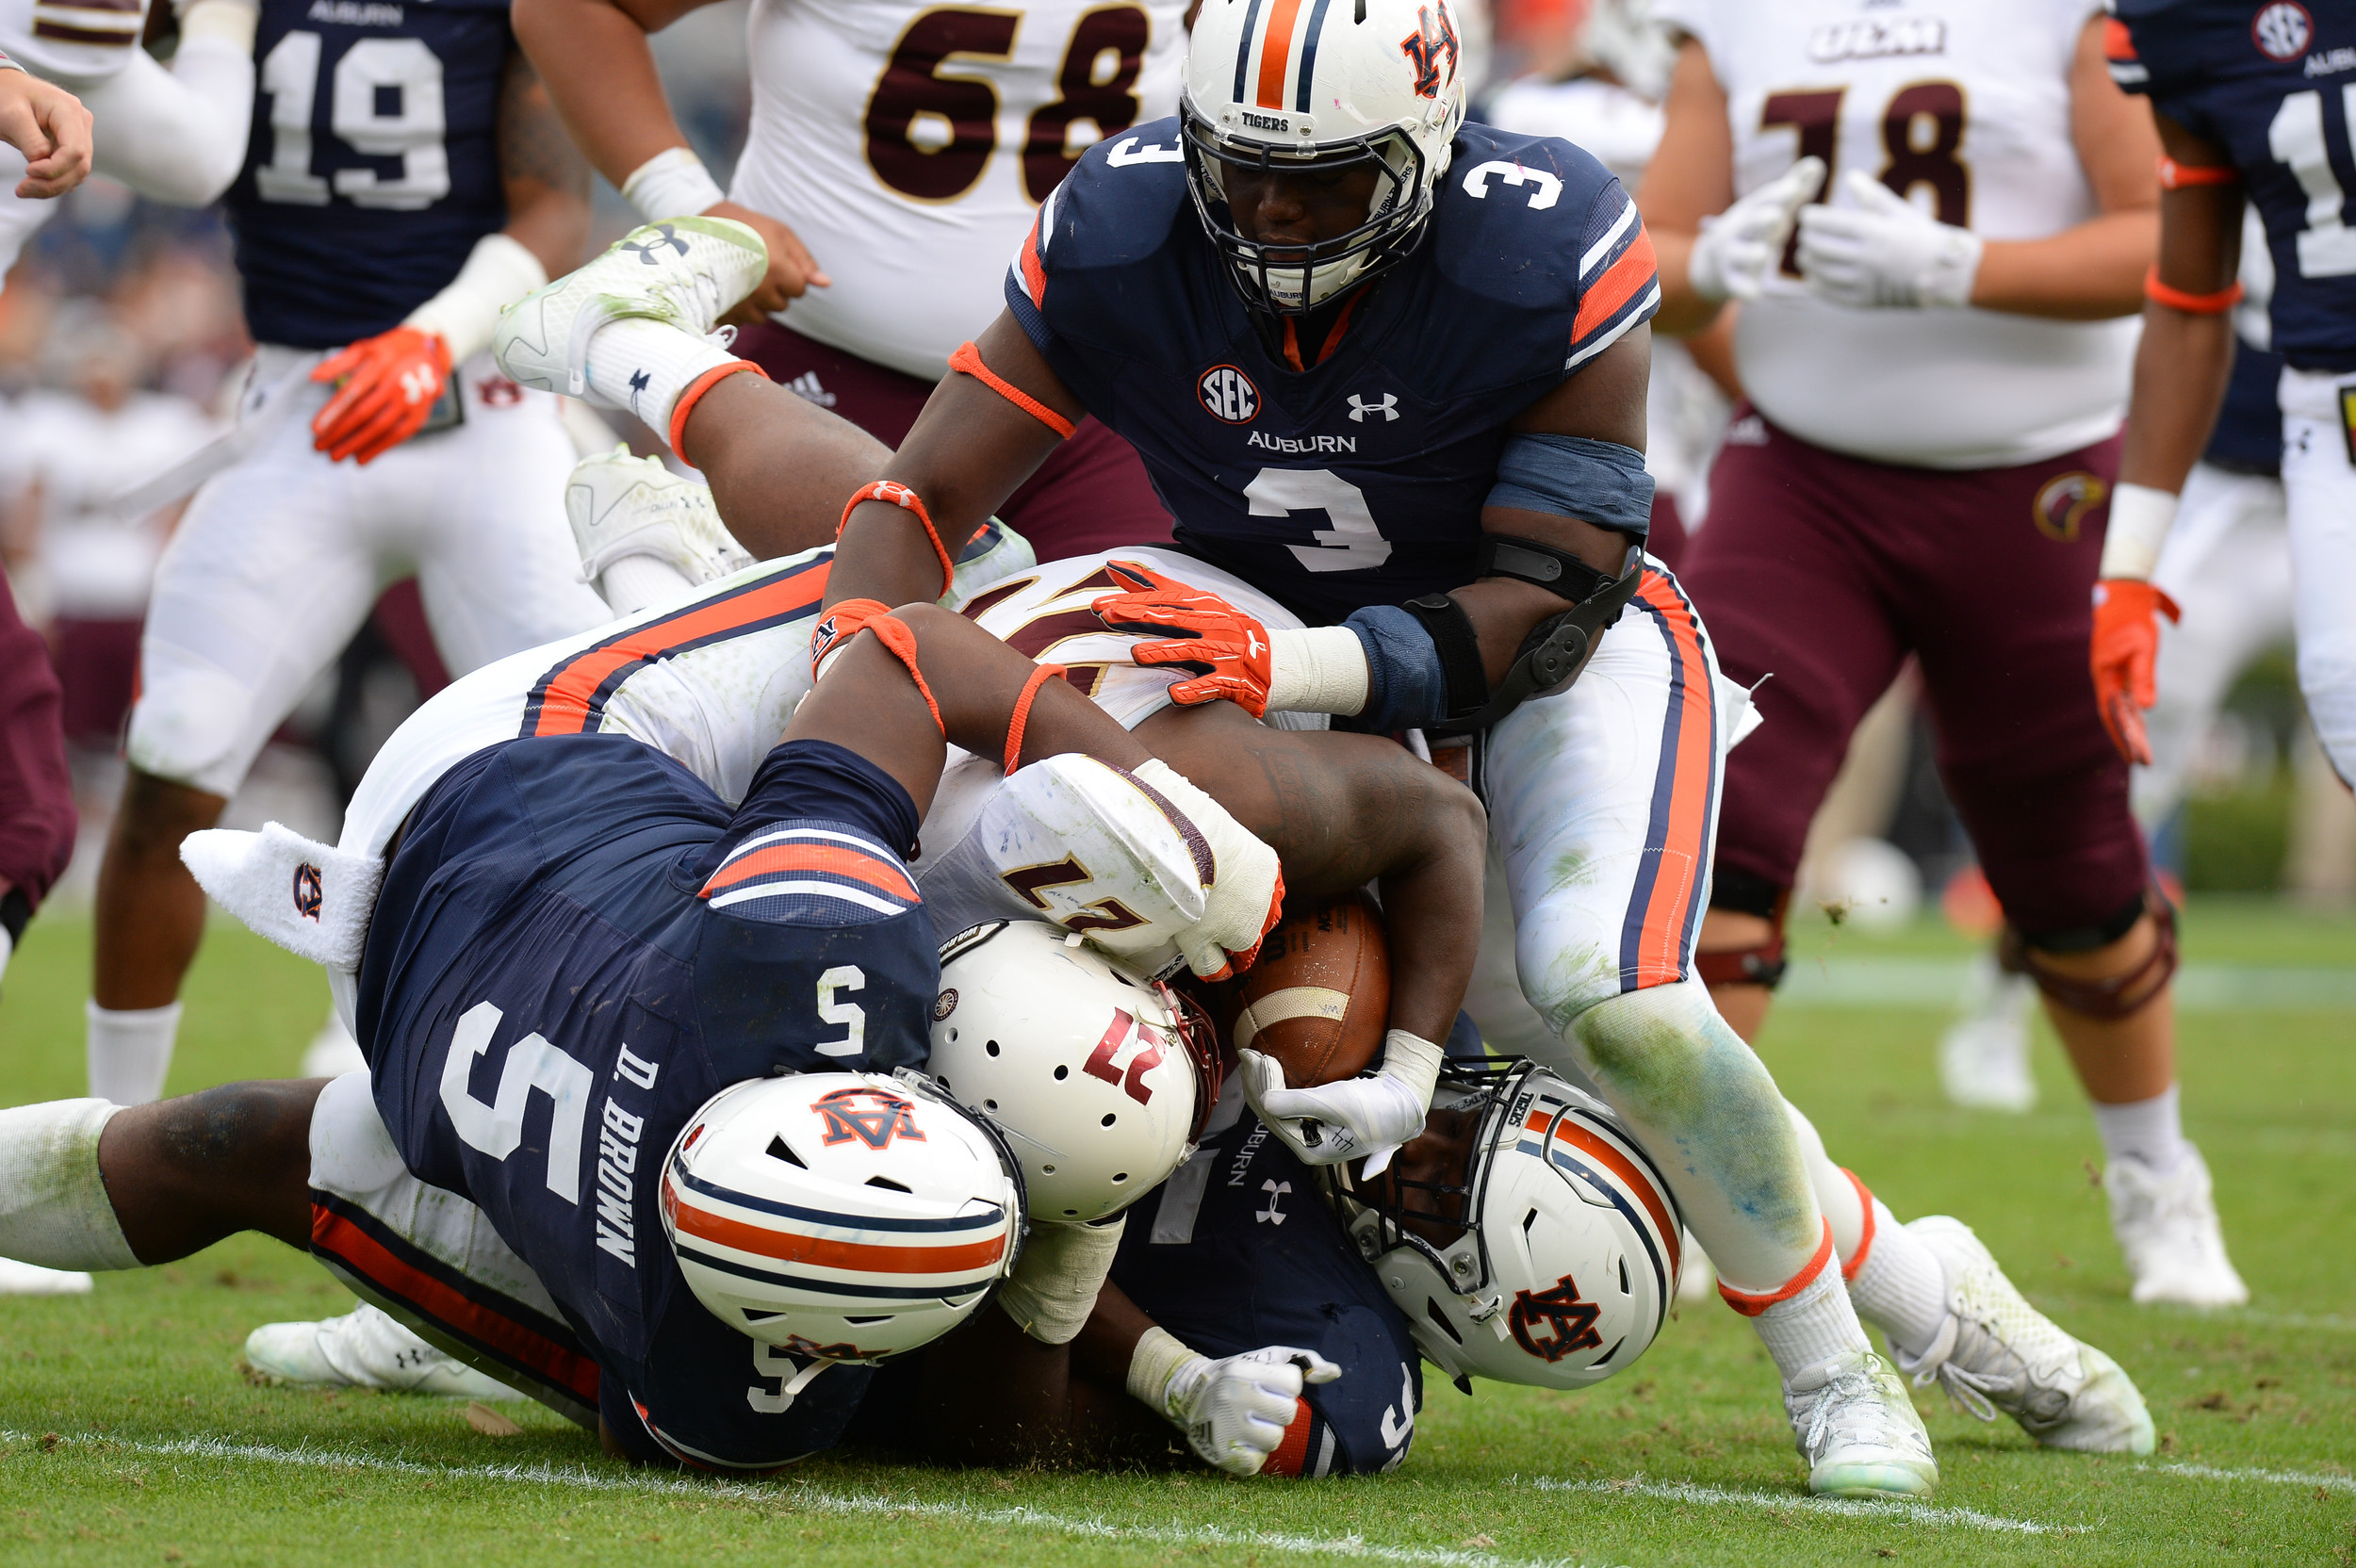 Louisiana Monroe Warhawks running back Derrick Gore (27) is stopped by Auburn Tigers defensive linemen Derrick Brown (5), Dontavius Russell (95) and Marlon Davidson (3) during the second half of Saturday's game, at Jordan-Hare Stadium.